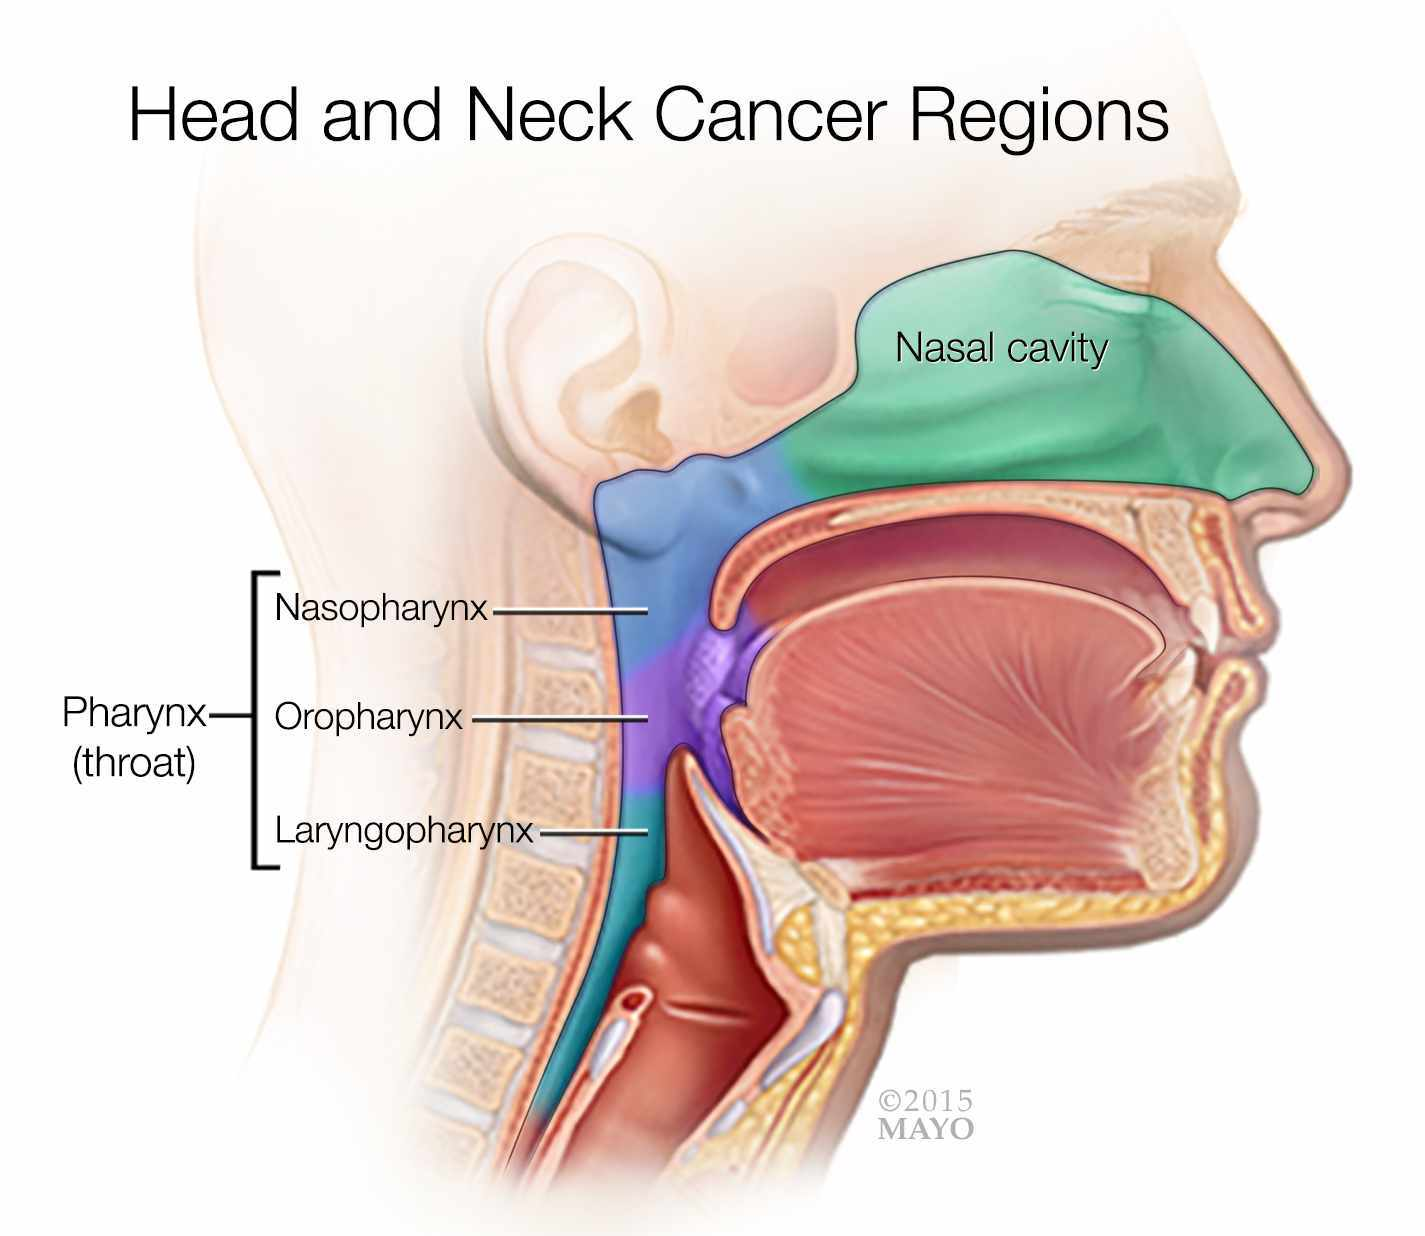 a medical illustrations of the head and neck cancer regions